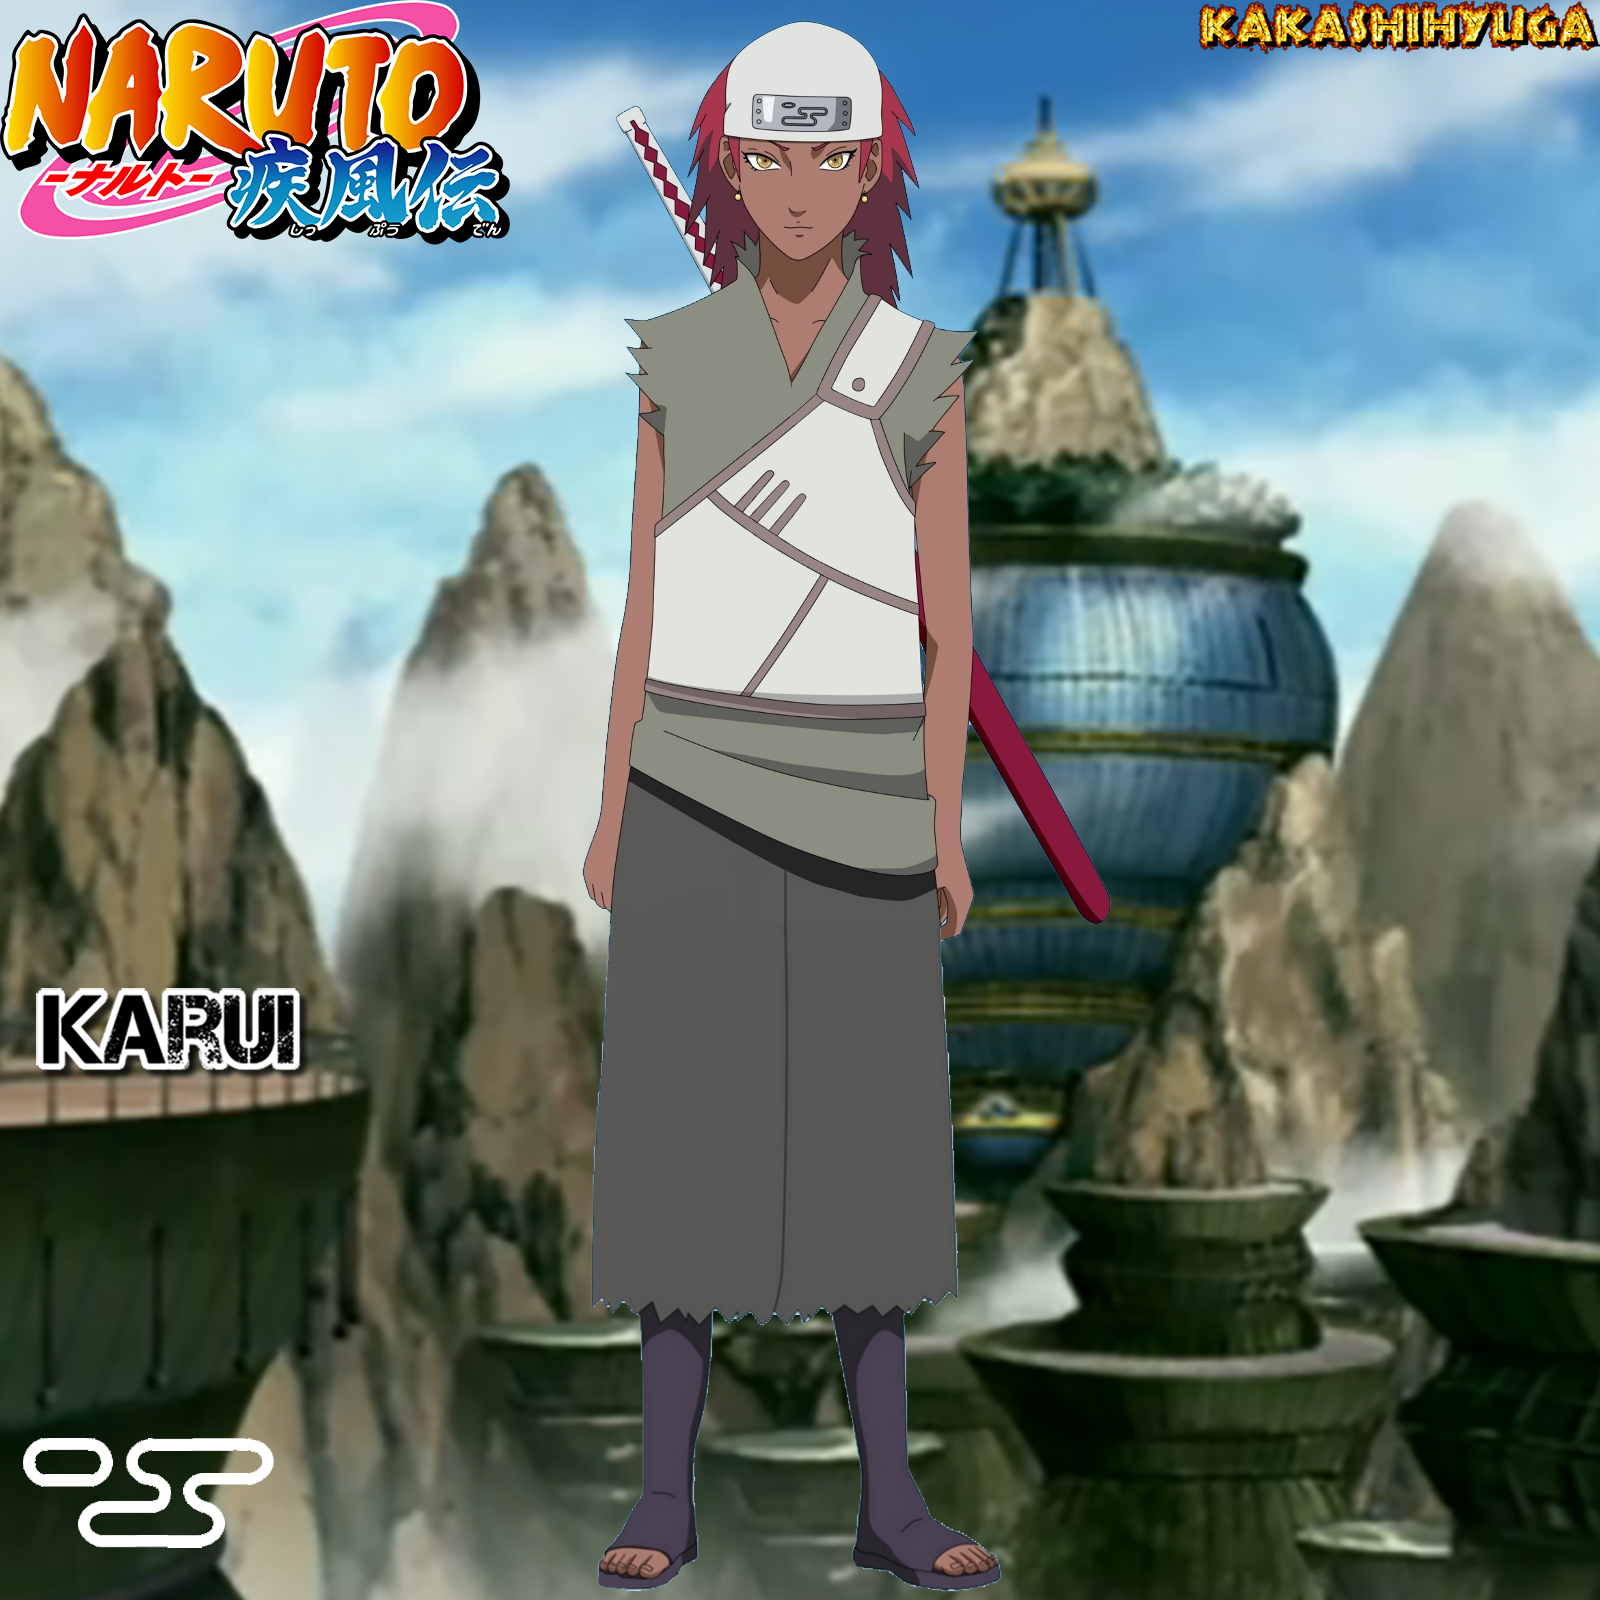 Karui By Kakashihyuga On Deviantart See a recent post on tumblr from @temarihime about karui. deviantart